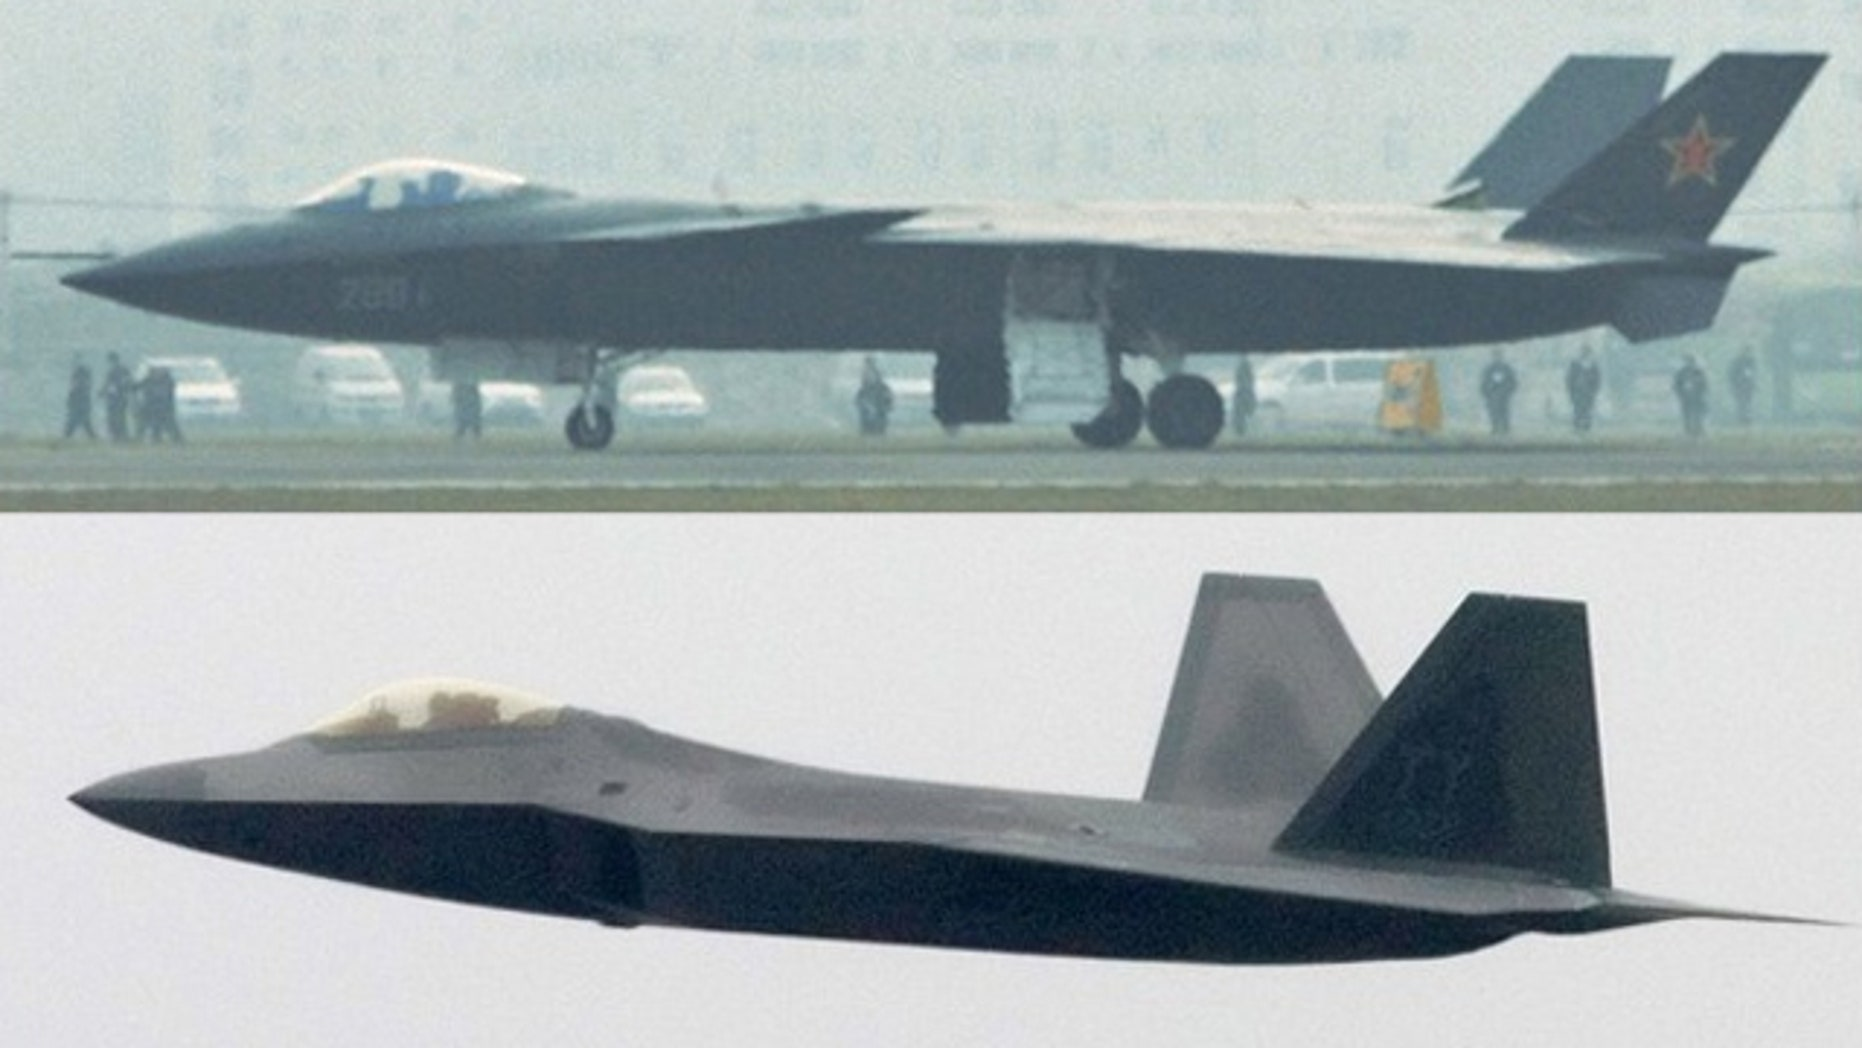 China's new J-20 stealth fighter (top) photographed in Chengdu, Sichuan province, January 7, 2011. Some analysts have said China may be making faster-than-expected progress in developing a rival to the F-22 Raptor (below).